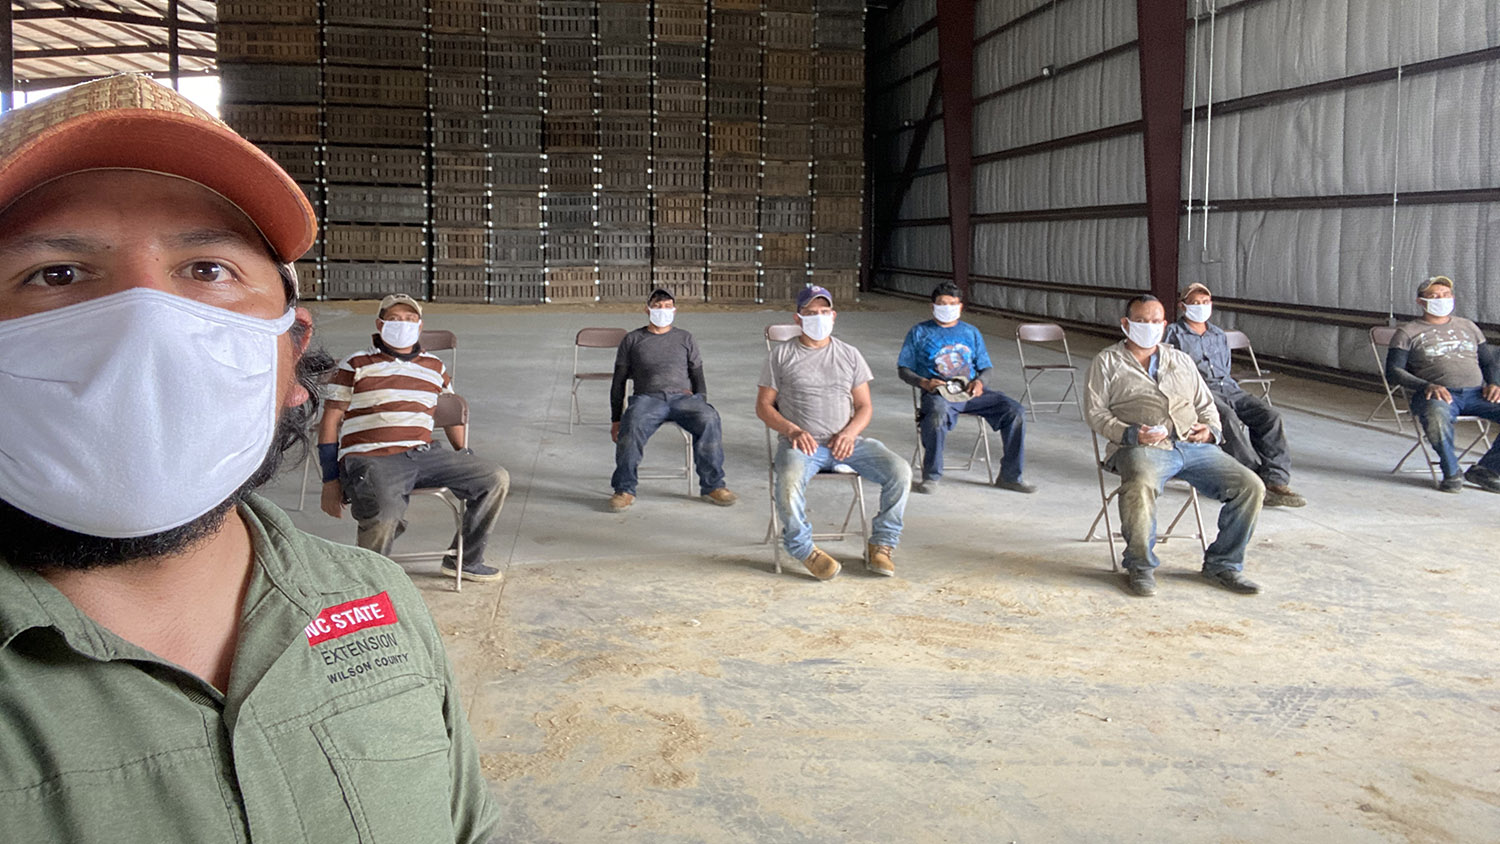 Socially distanced men with masks in a barn.